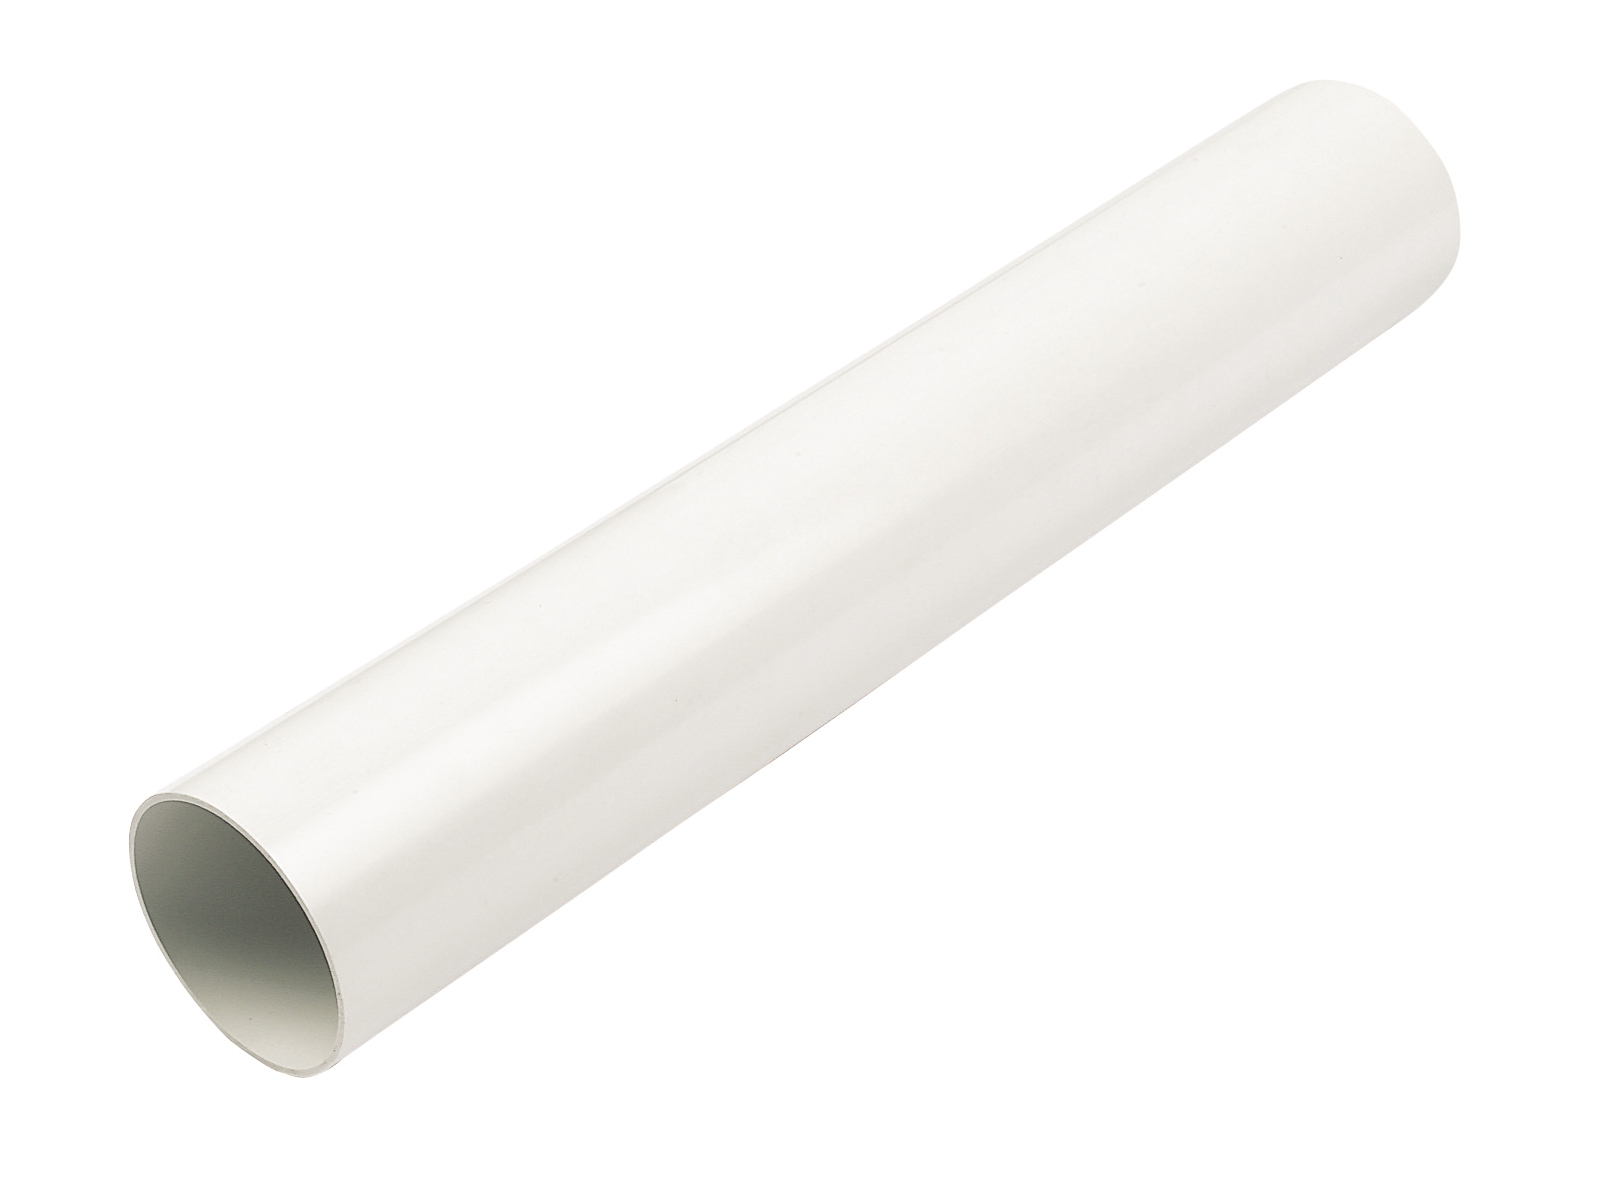 FLOPLAST 68MM ROUND DOWNPIPE - RP2.5 PIPE 2.5M - WHITE